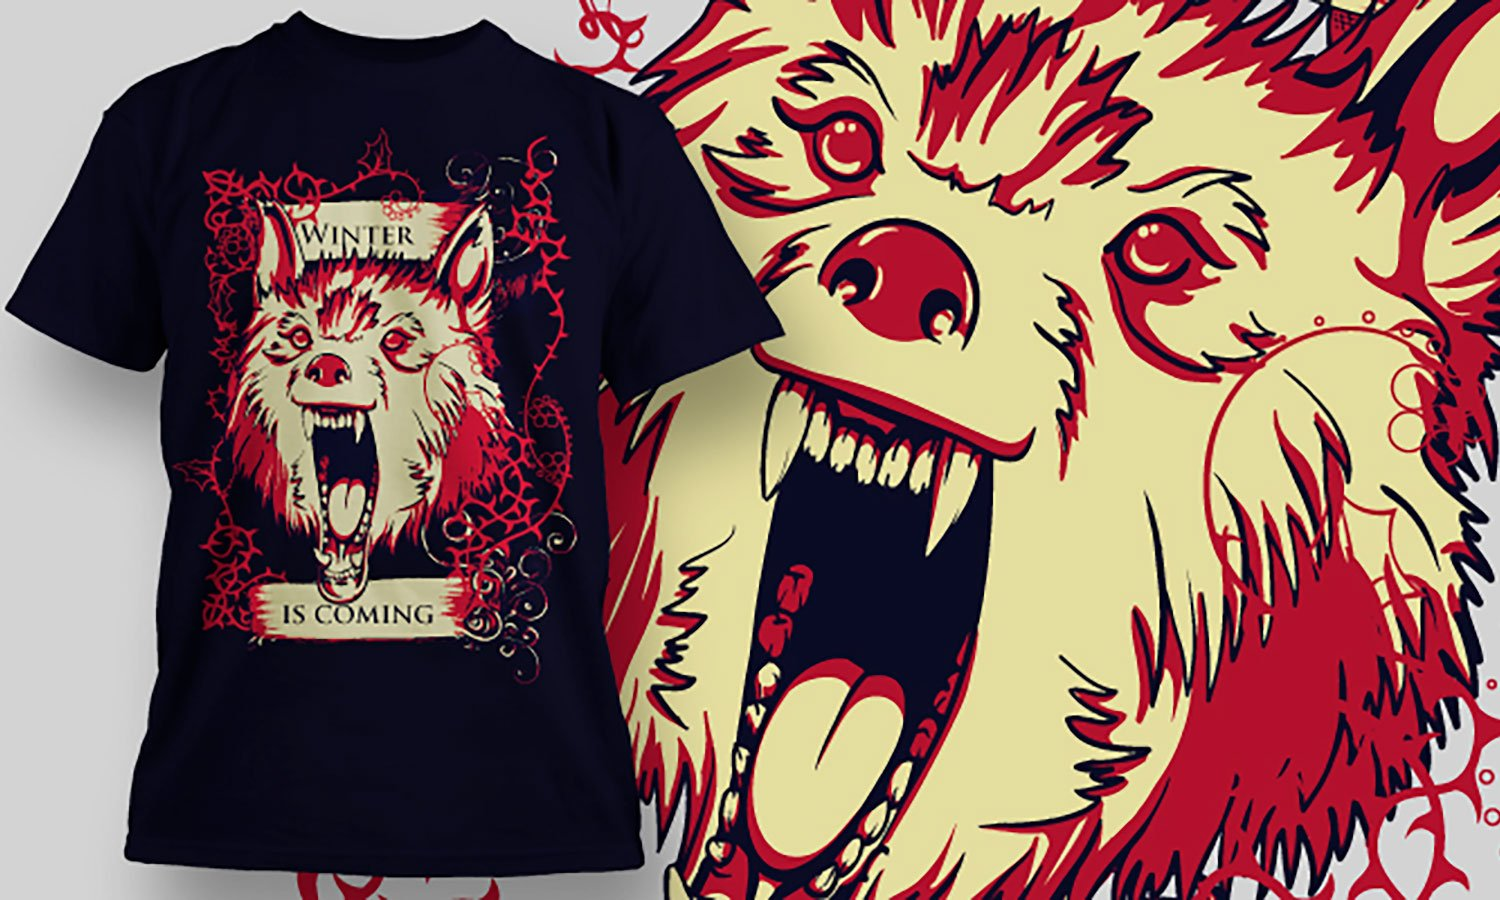 Winter Wolf - Printed T-Shirt for Men, Women and Kids - TS103